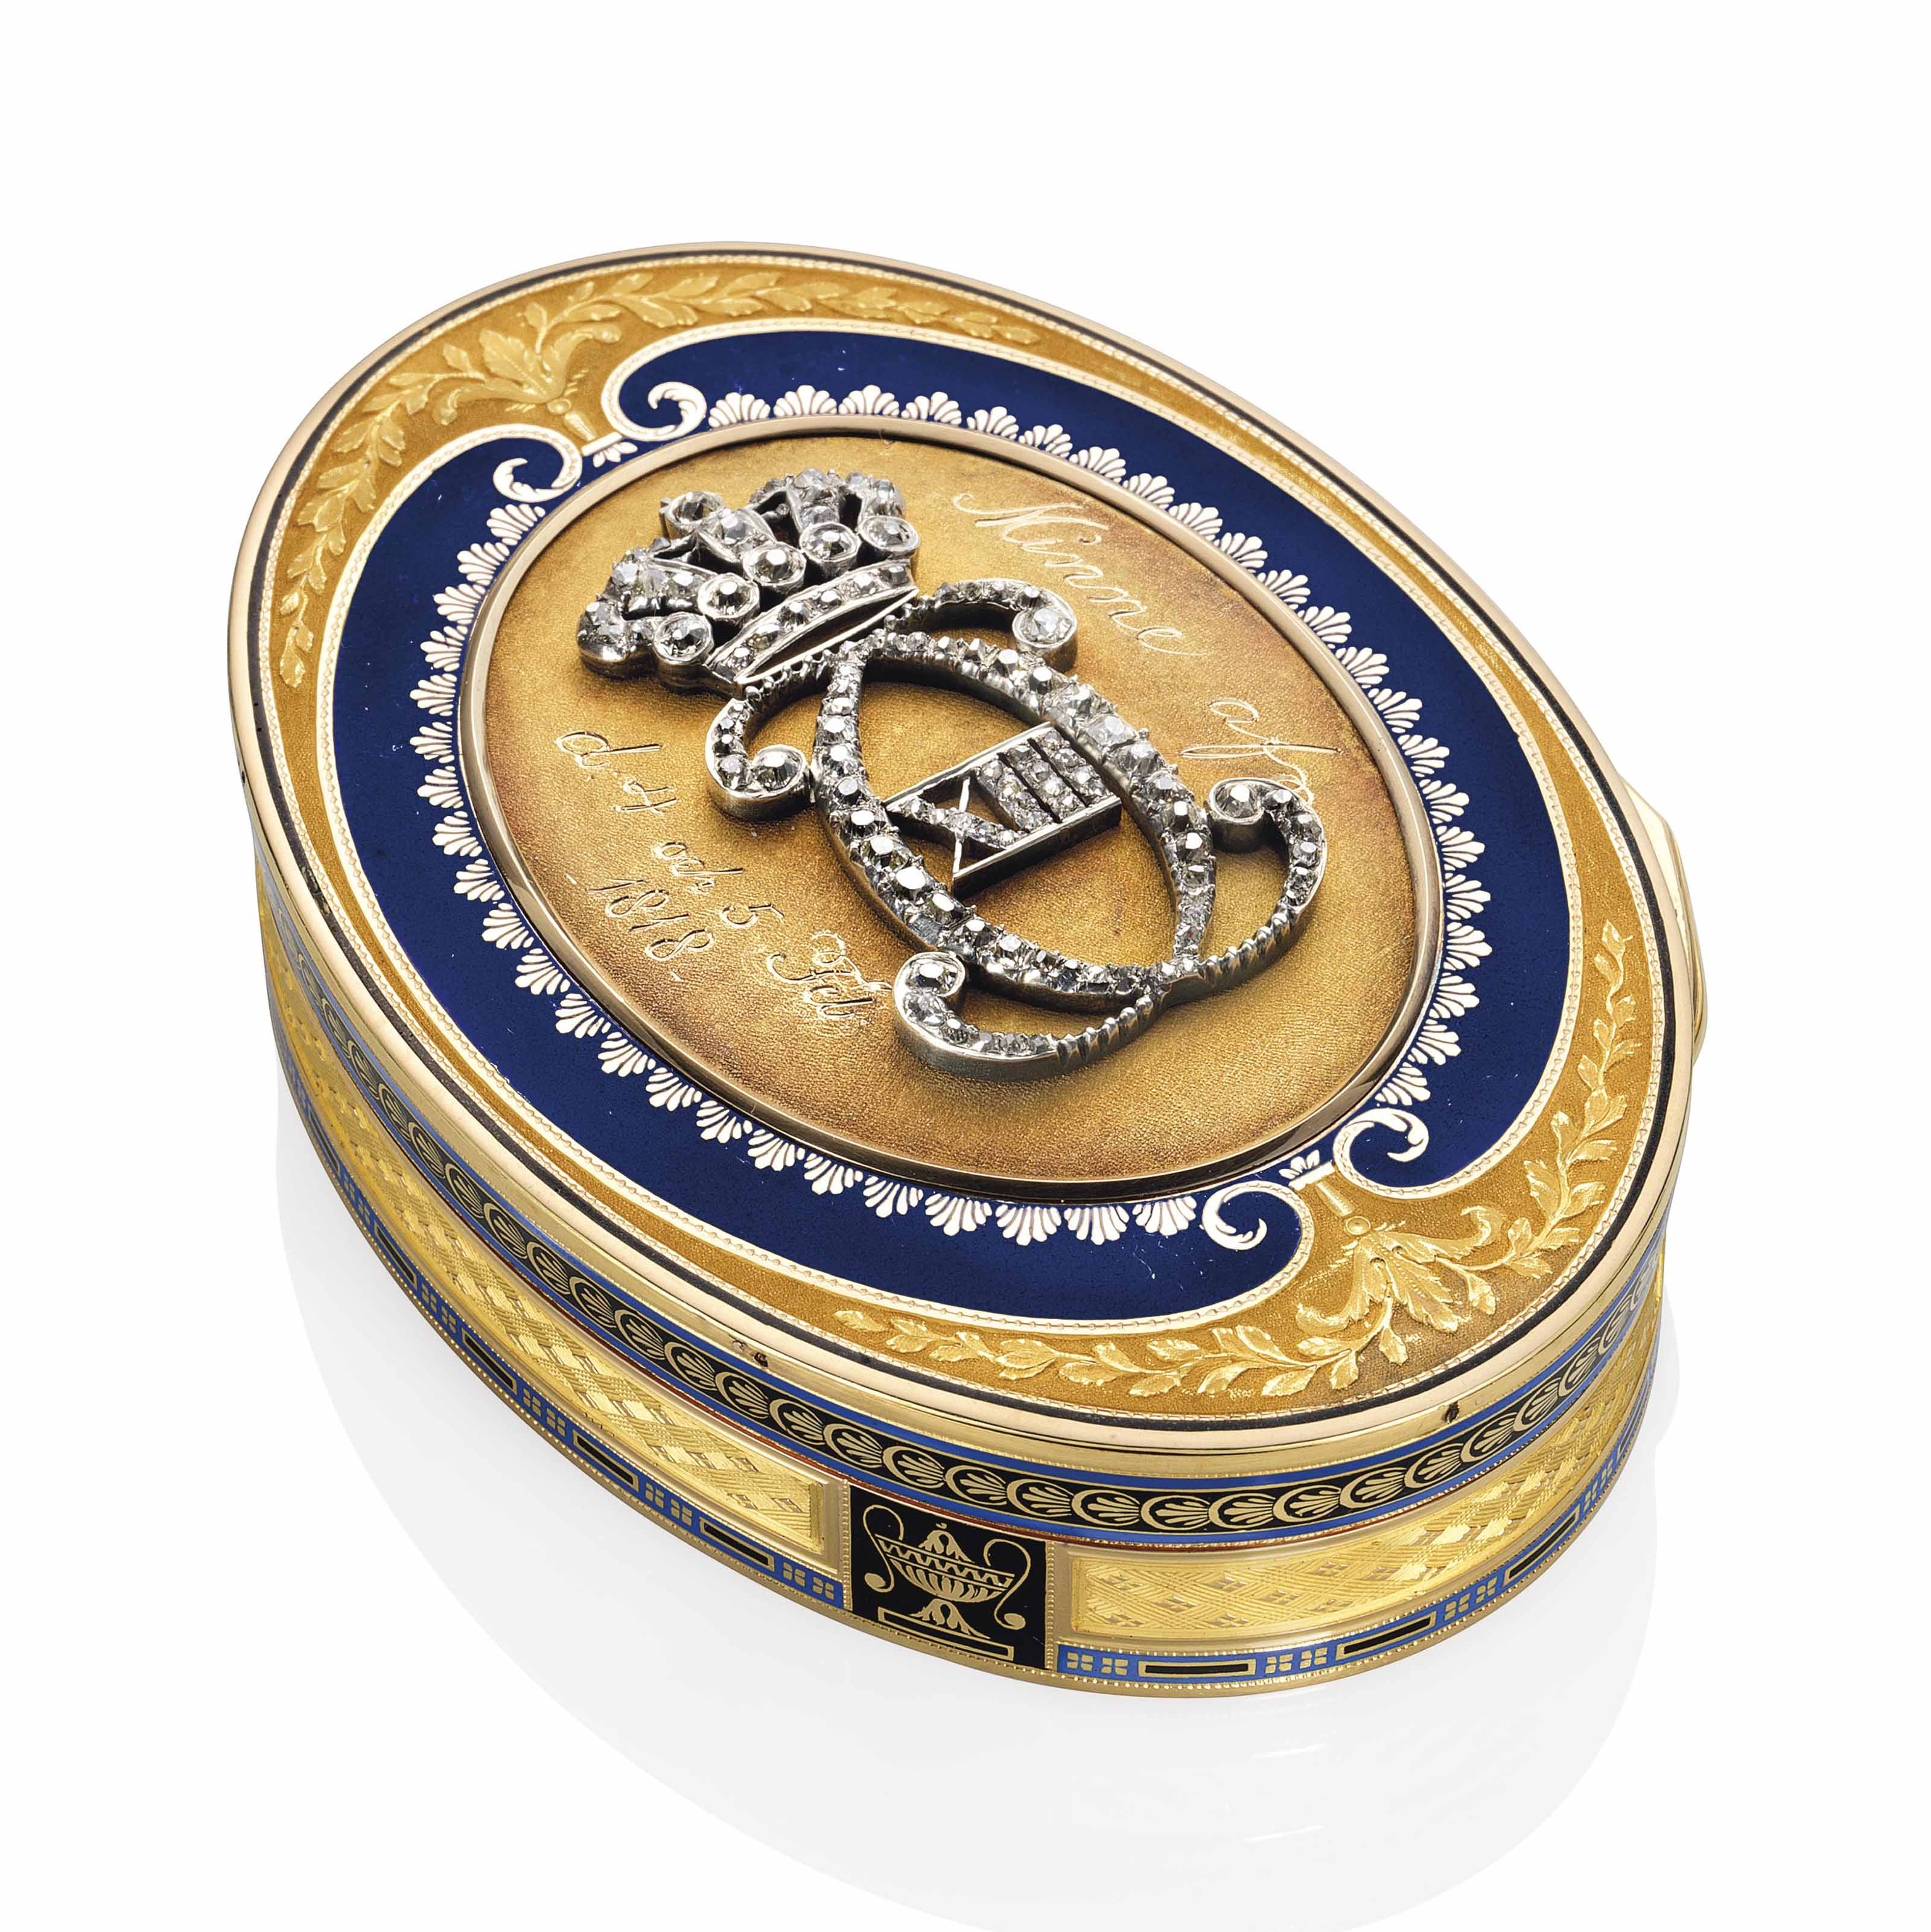 A FRENCH ROYAL JEWELLED PARCEL-ENAMELLED GOLD PRESENTATION SNUFF-BOX